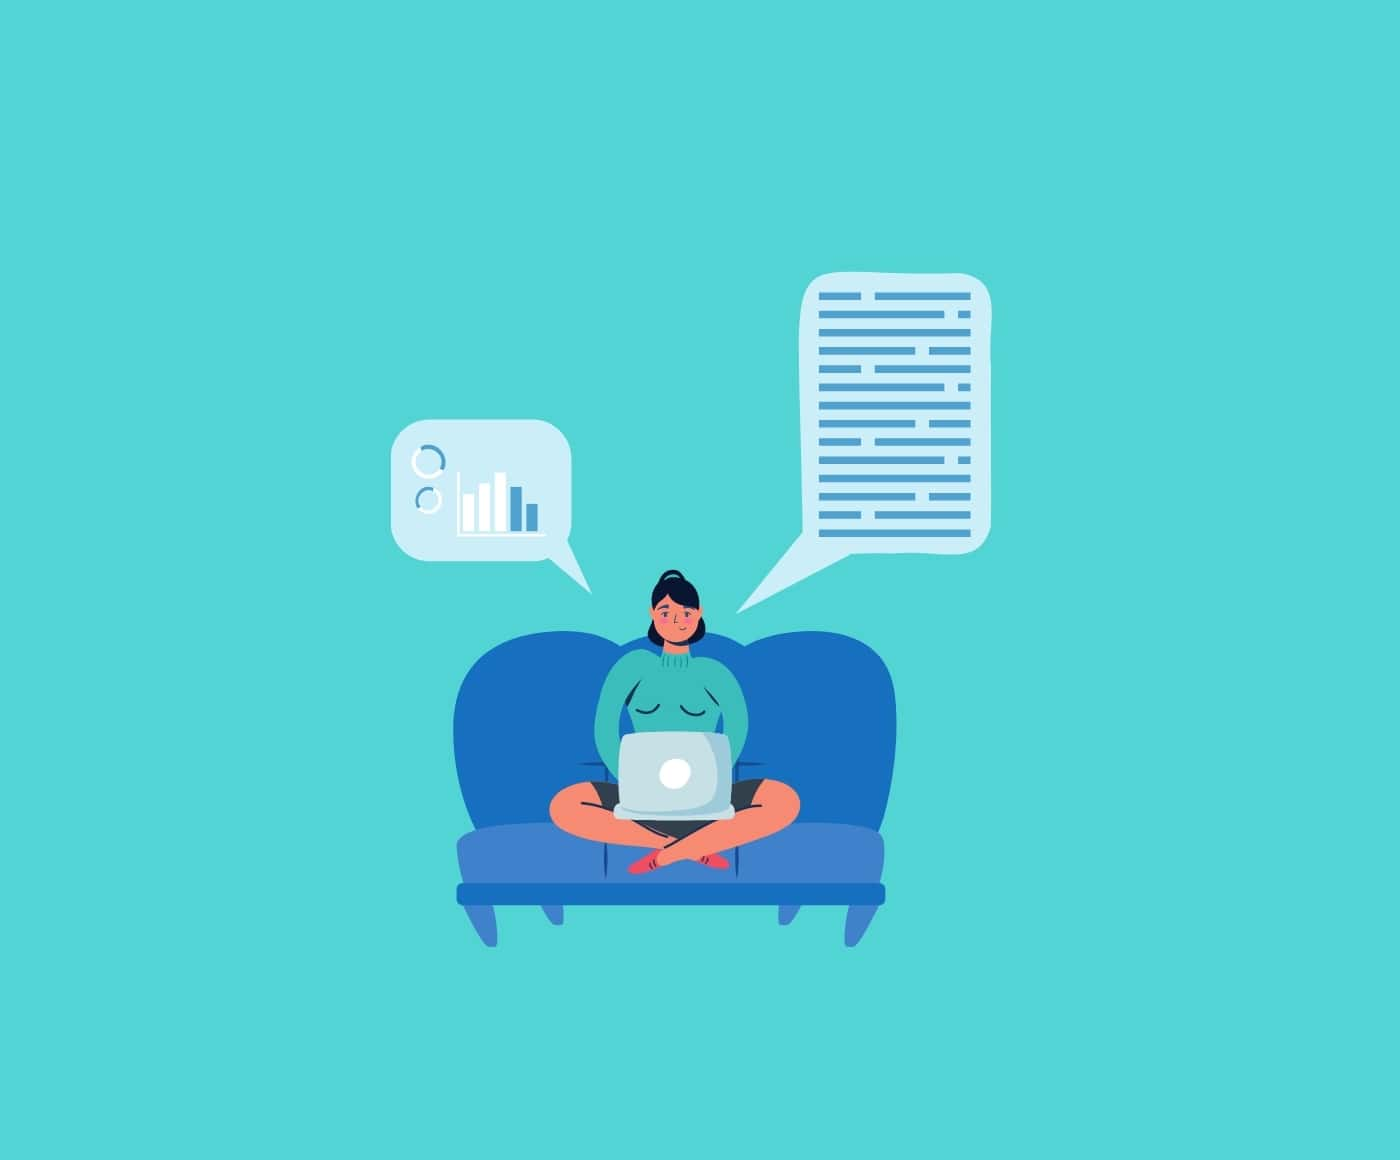 4 ways to maintain meaningful human connections while managing remotely